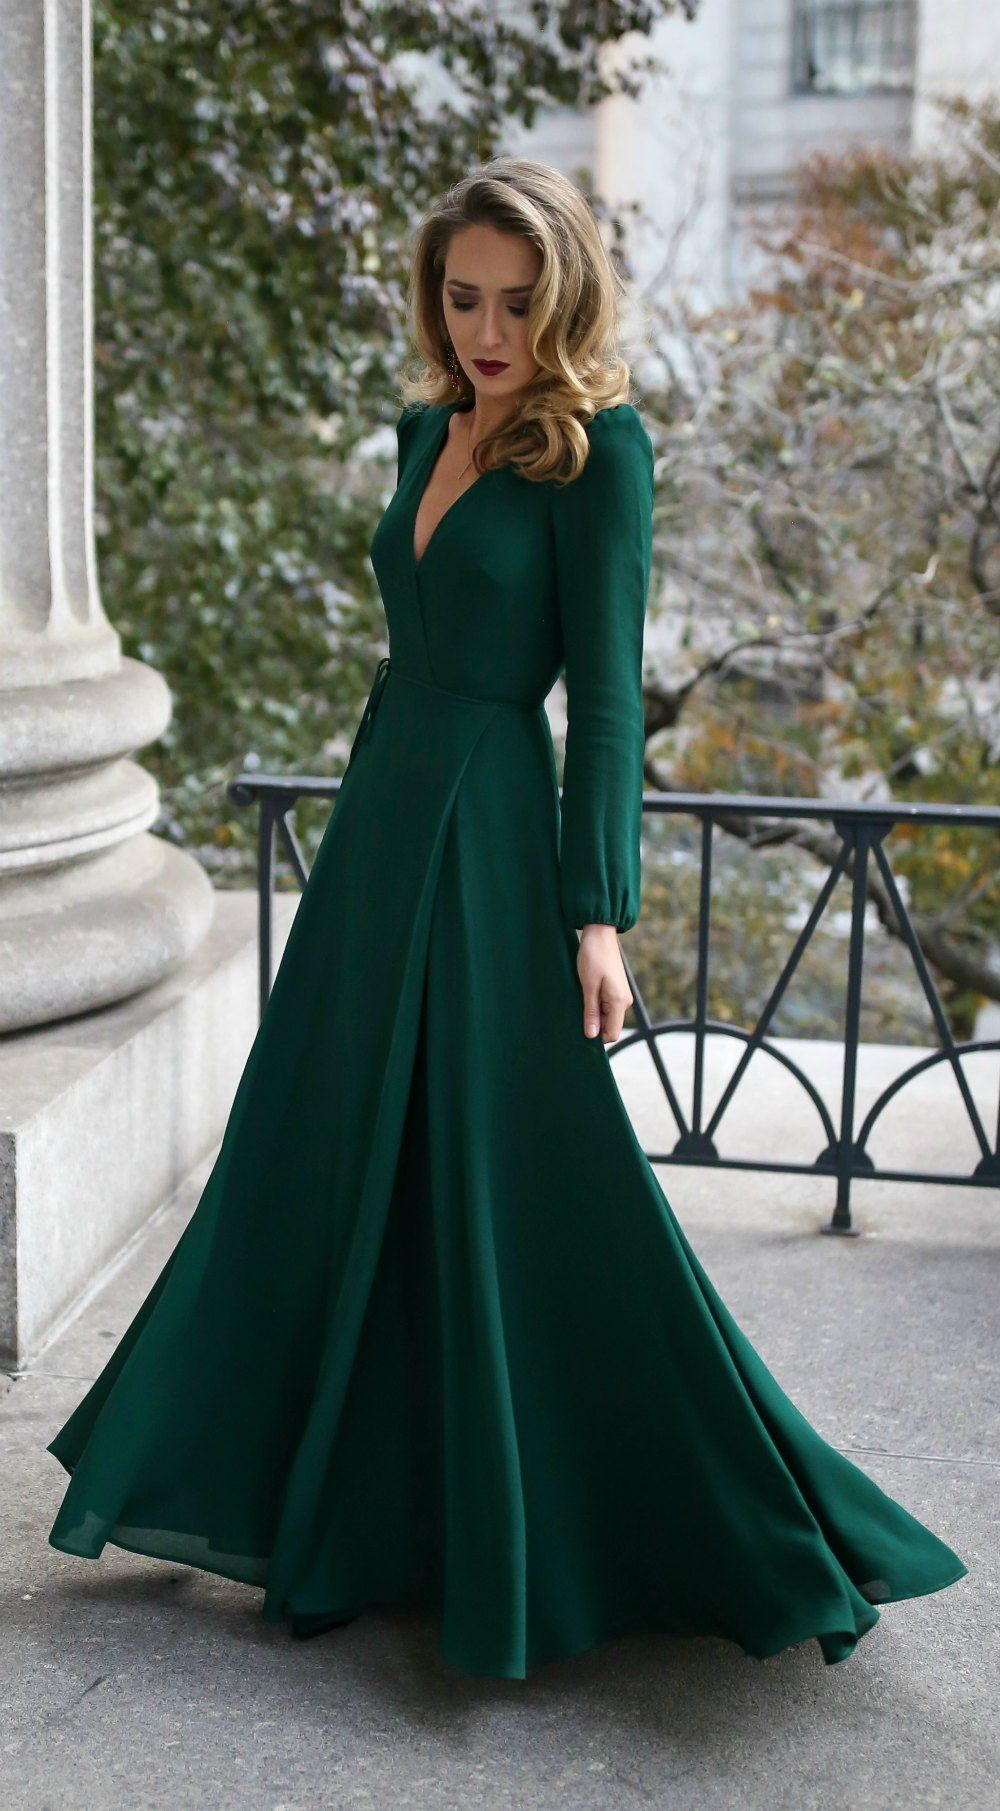 8013c3fe75 30 DRESSES IN 30 DAYS  Black Tie Wedding Guest    Emerald green long-sleeved  floor-length wrap dress